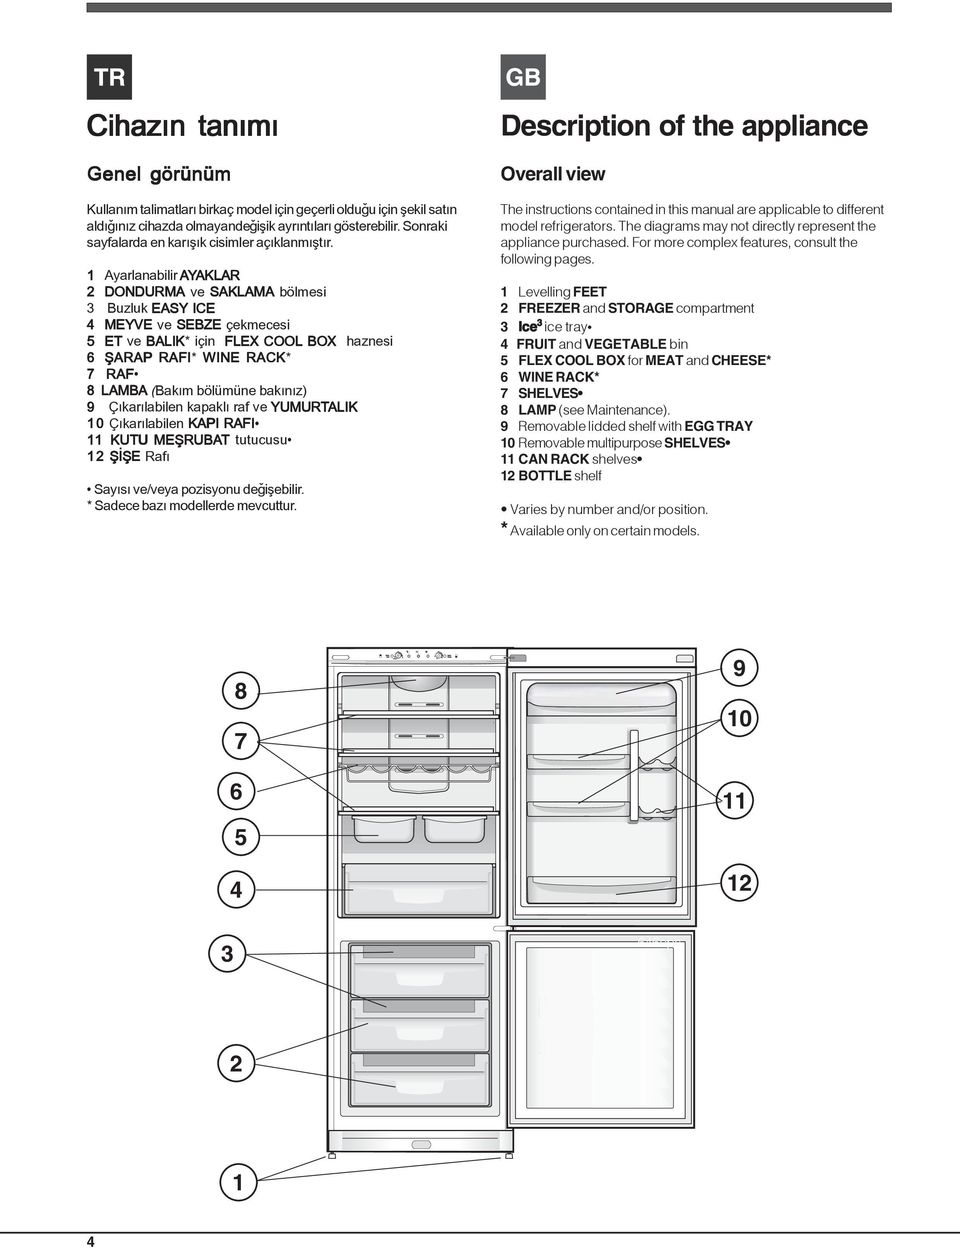 The diagrams may not directly represent the appliance purchased. For more complex features, consult the following pages.